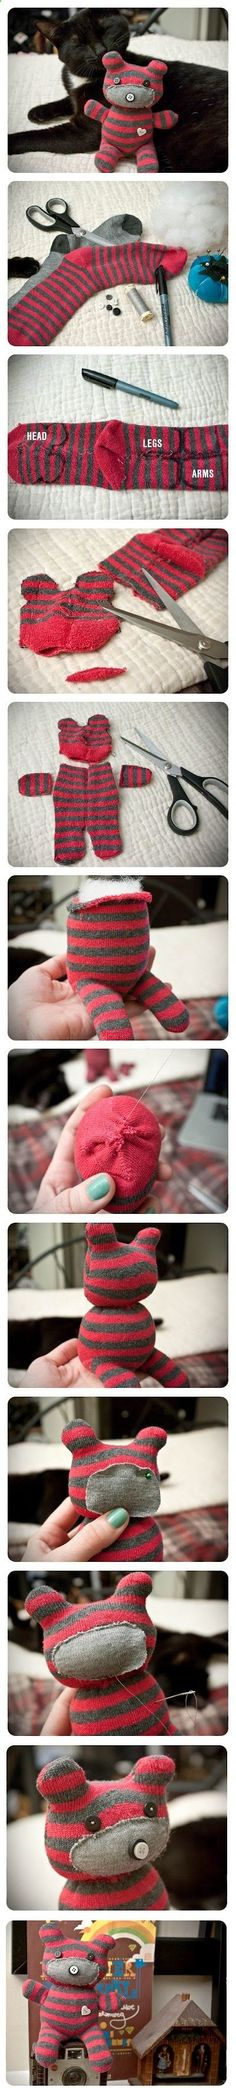 DIY Cute Little Teddy Bear